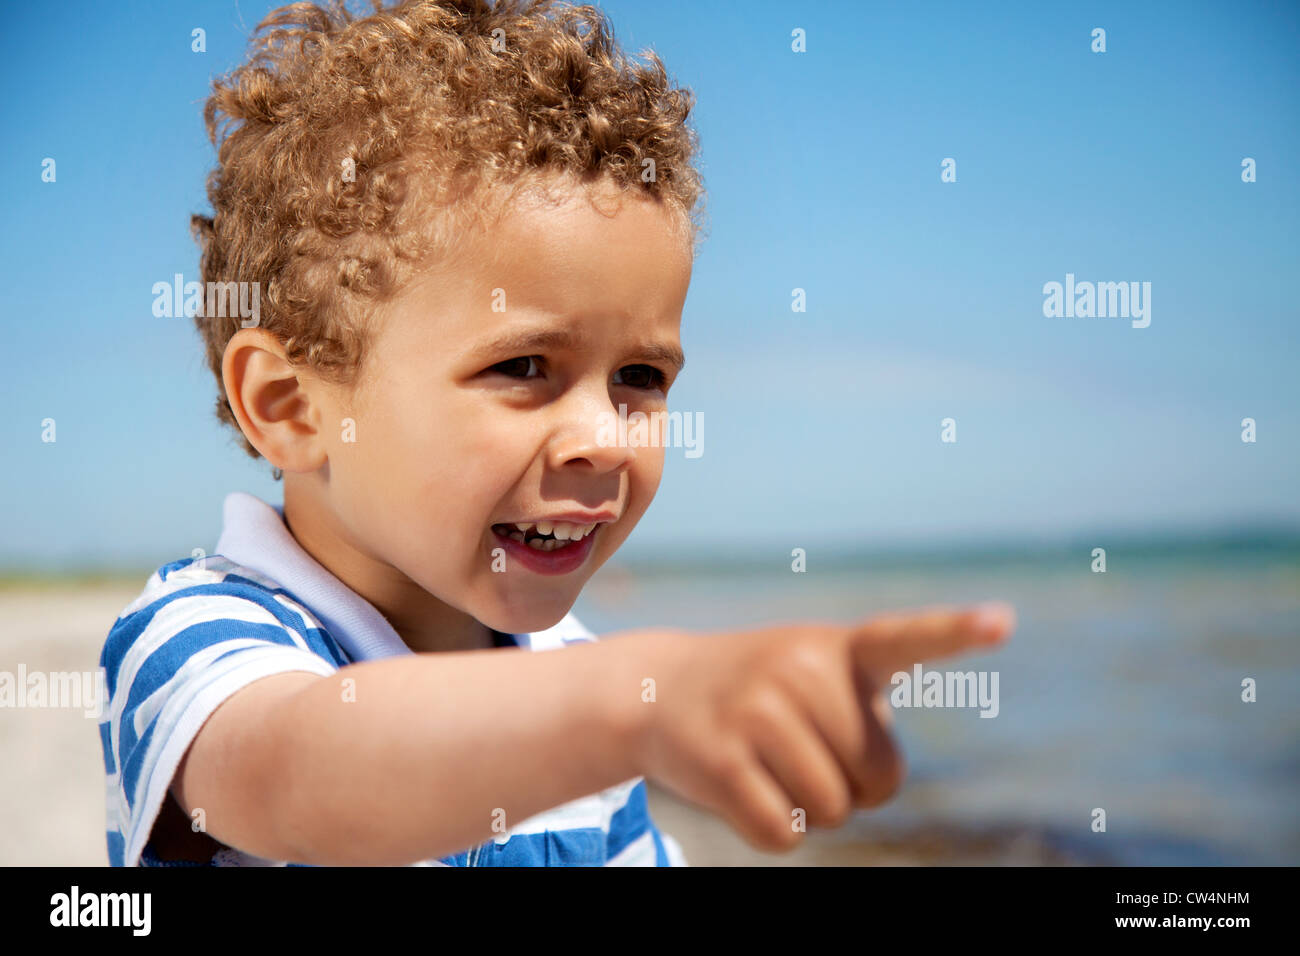 Adorable little kid pointing at something interesting outdoors - Stock Image